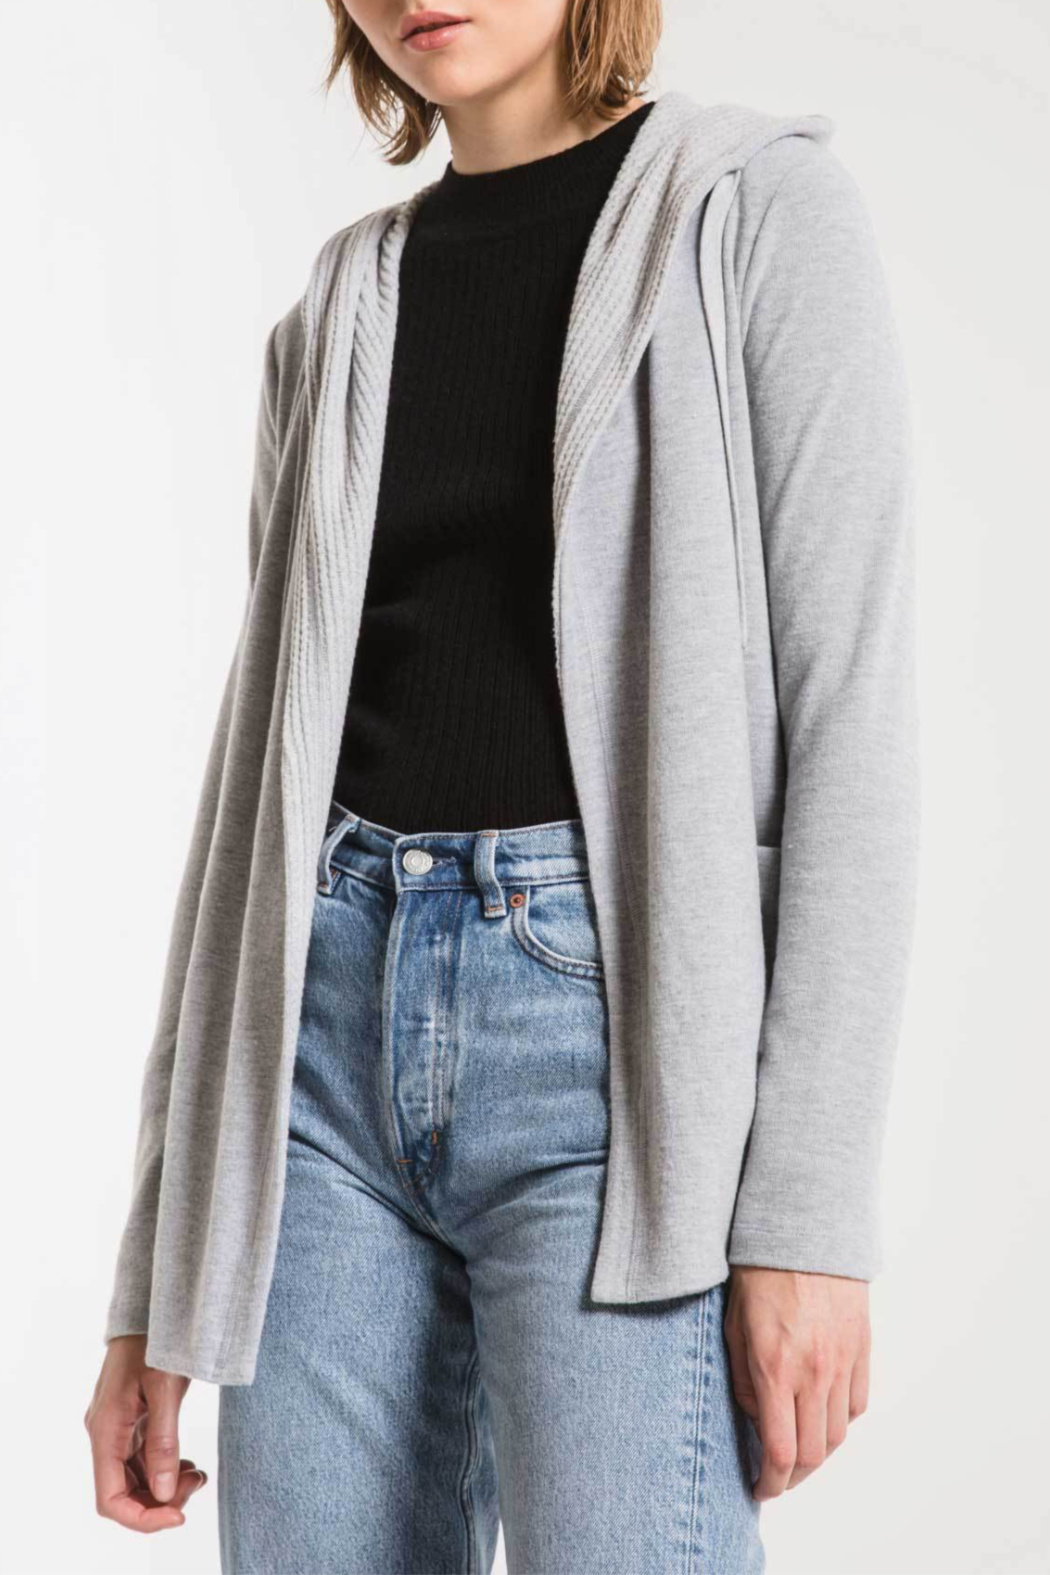 z supply Thermal Lined Soft Spun Cardigan - Main Image